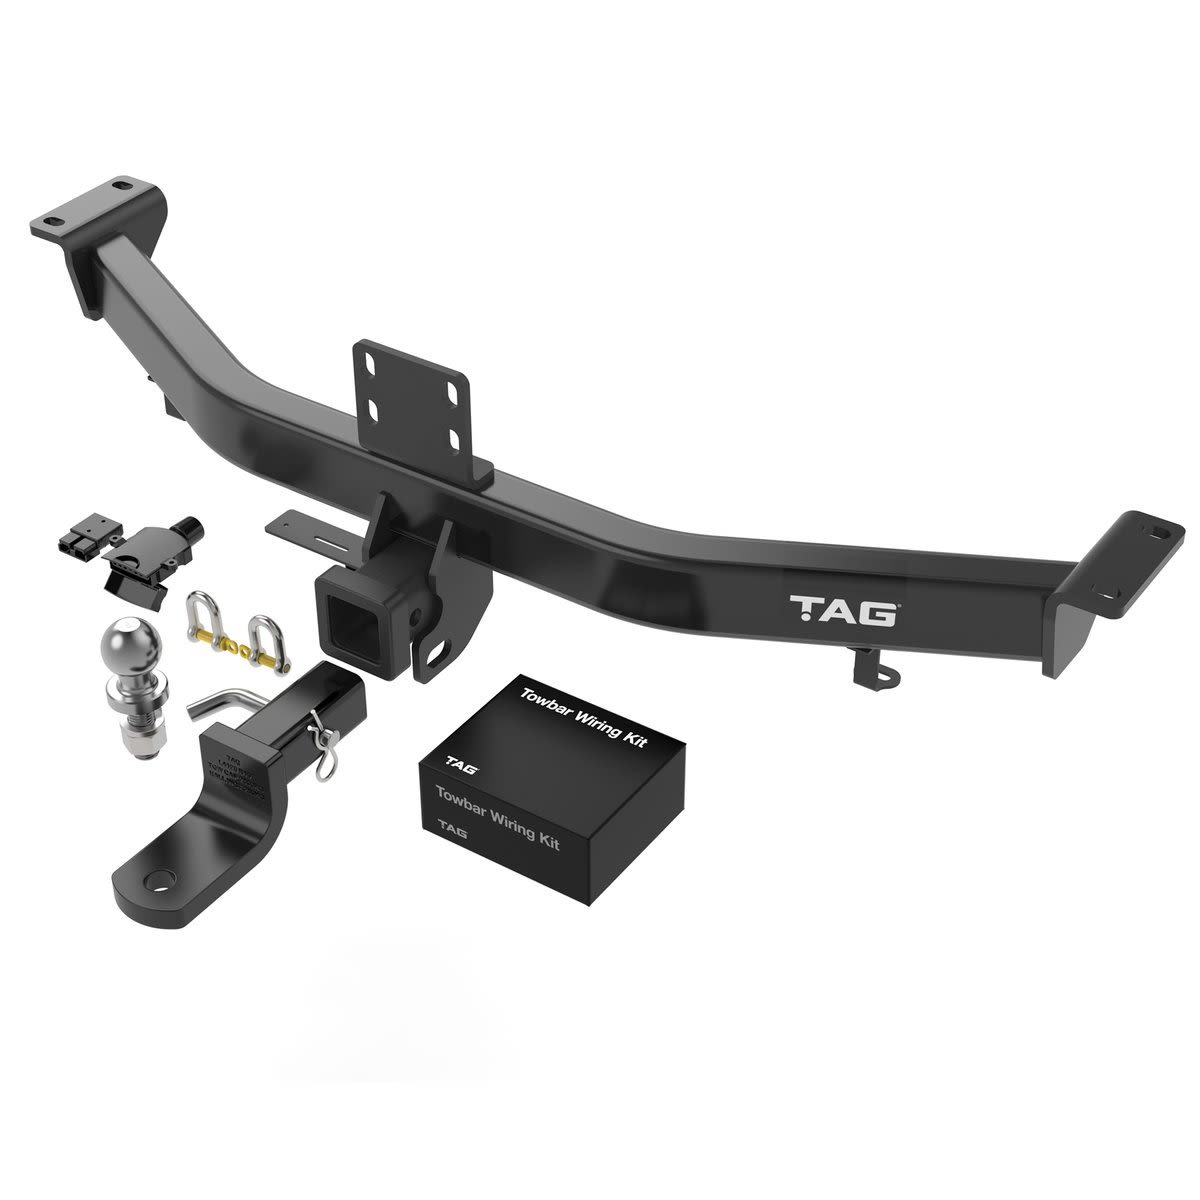 TAG Heavy Duty Towbar to suit Mitsubishi Pajero Sport (12/2015 - on) - No Wiring Harness